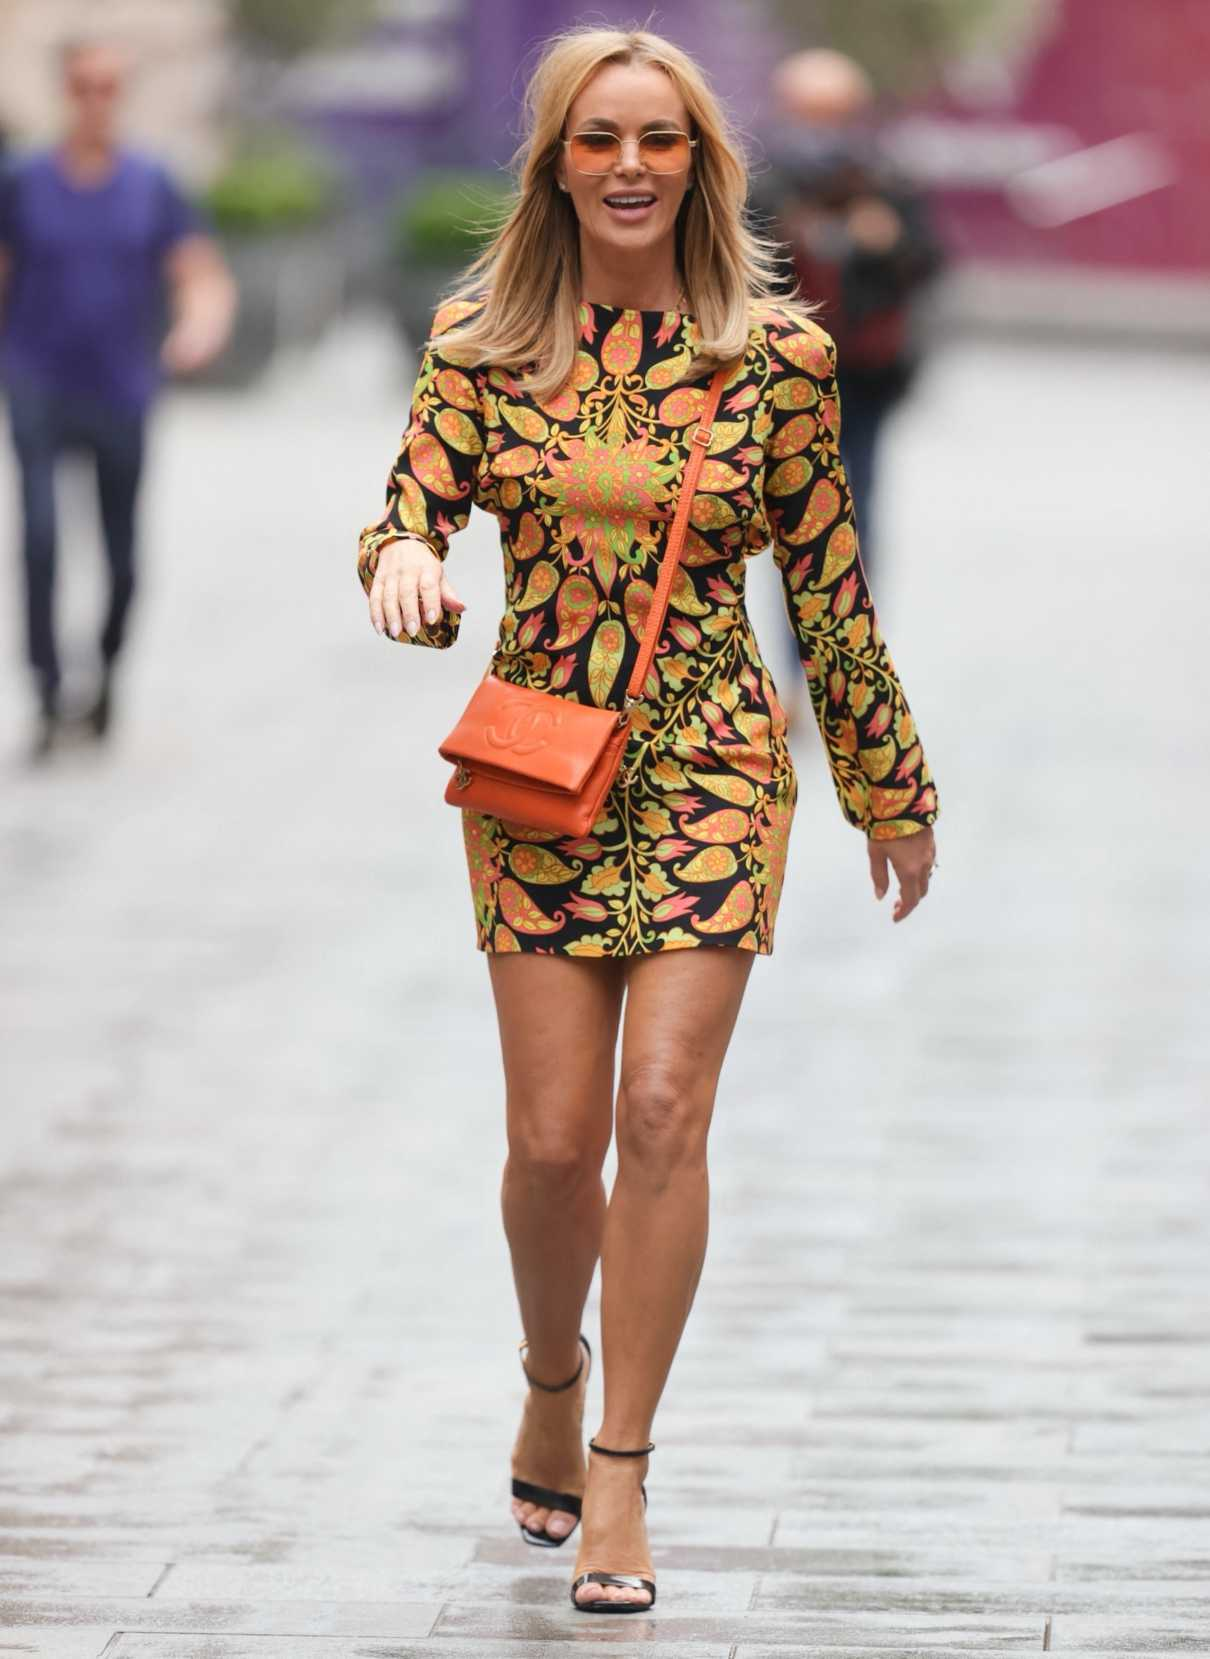 Amanda Holden in a Patterned Mini Dress